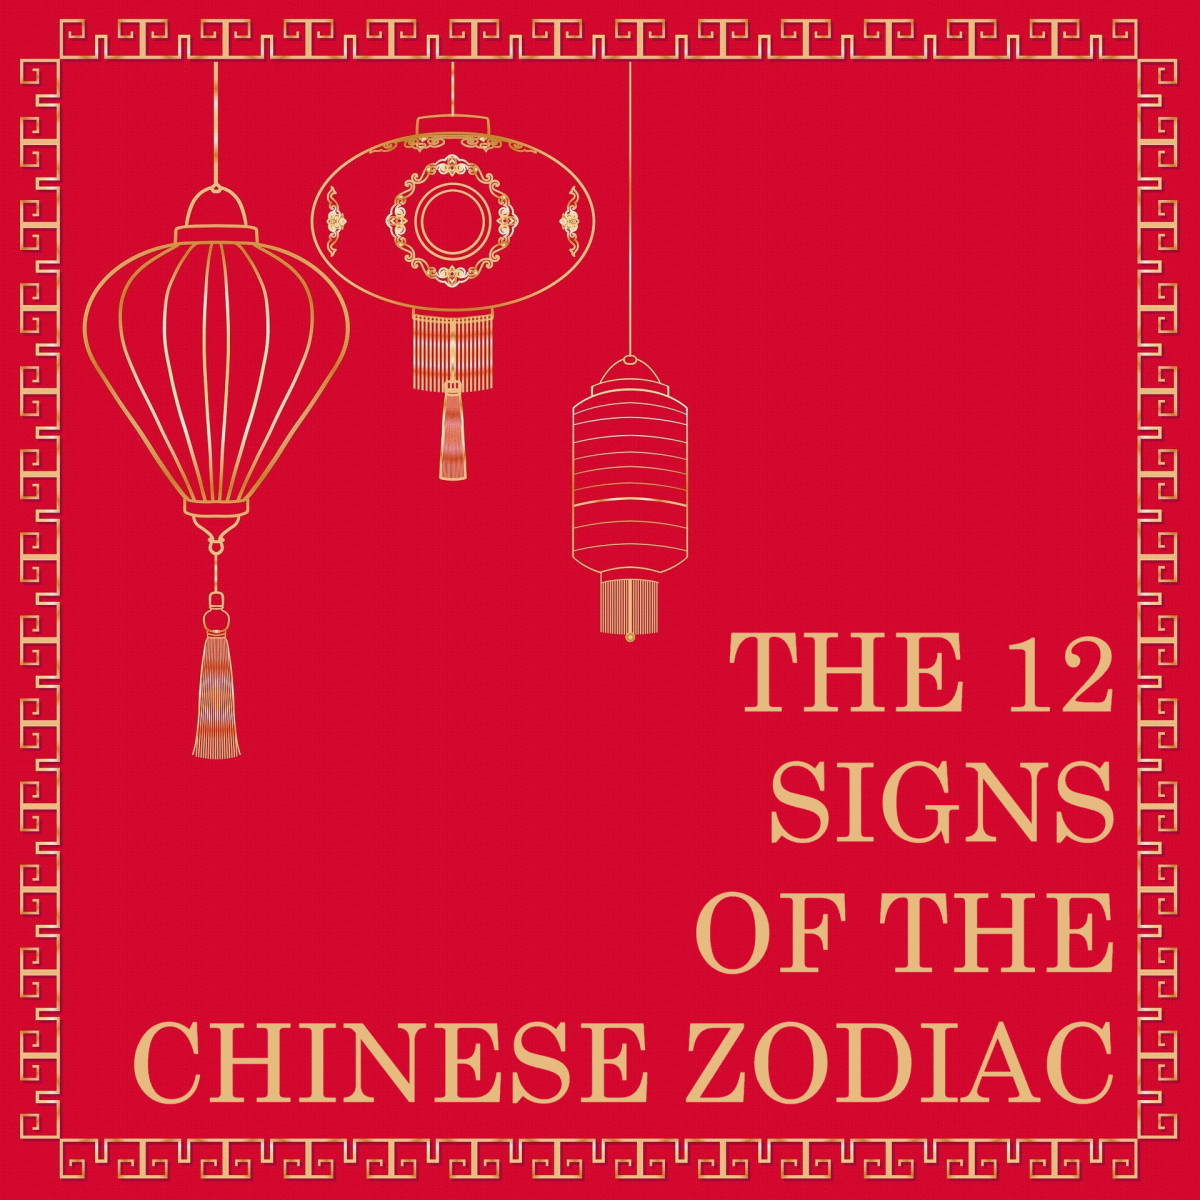 The 12 Signs of the Chinese Zodiac